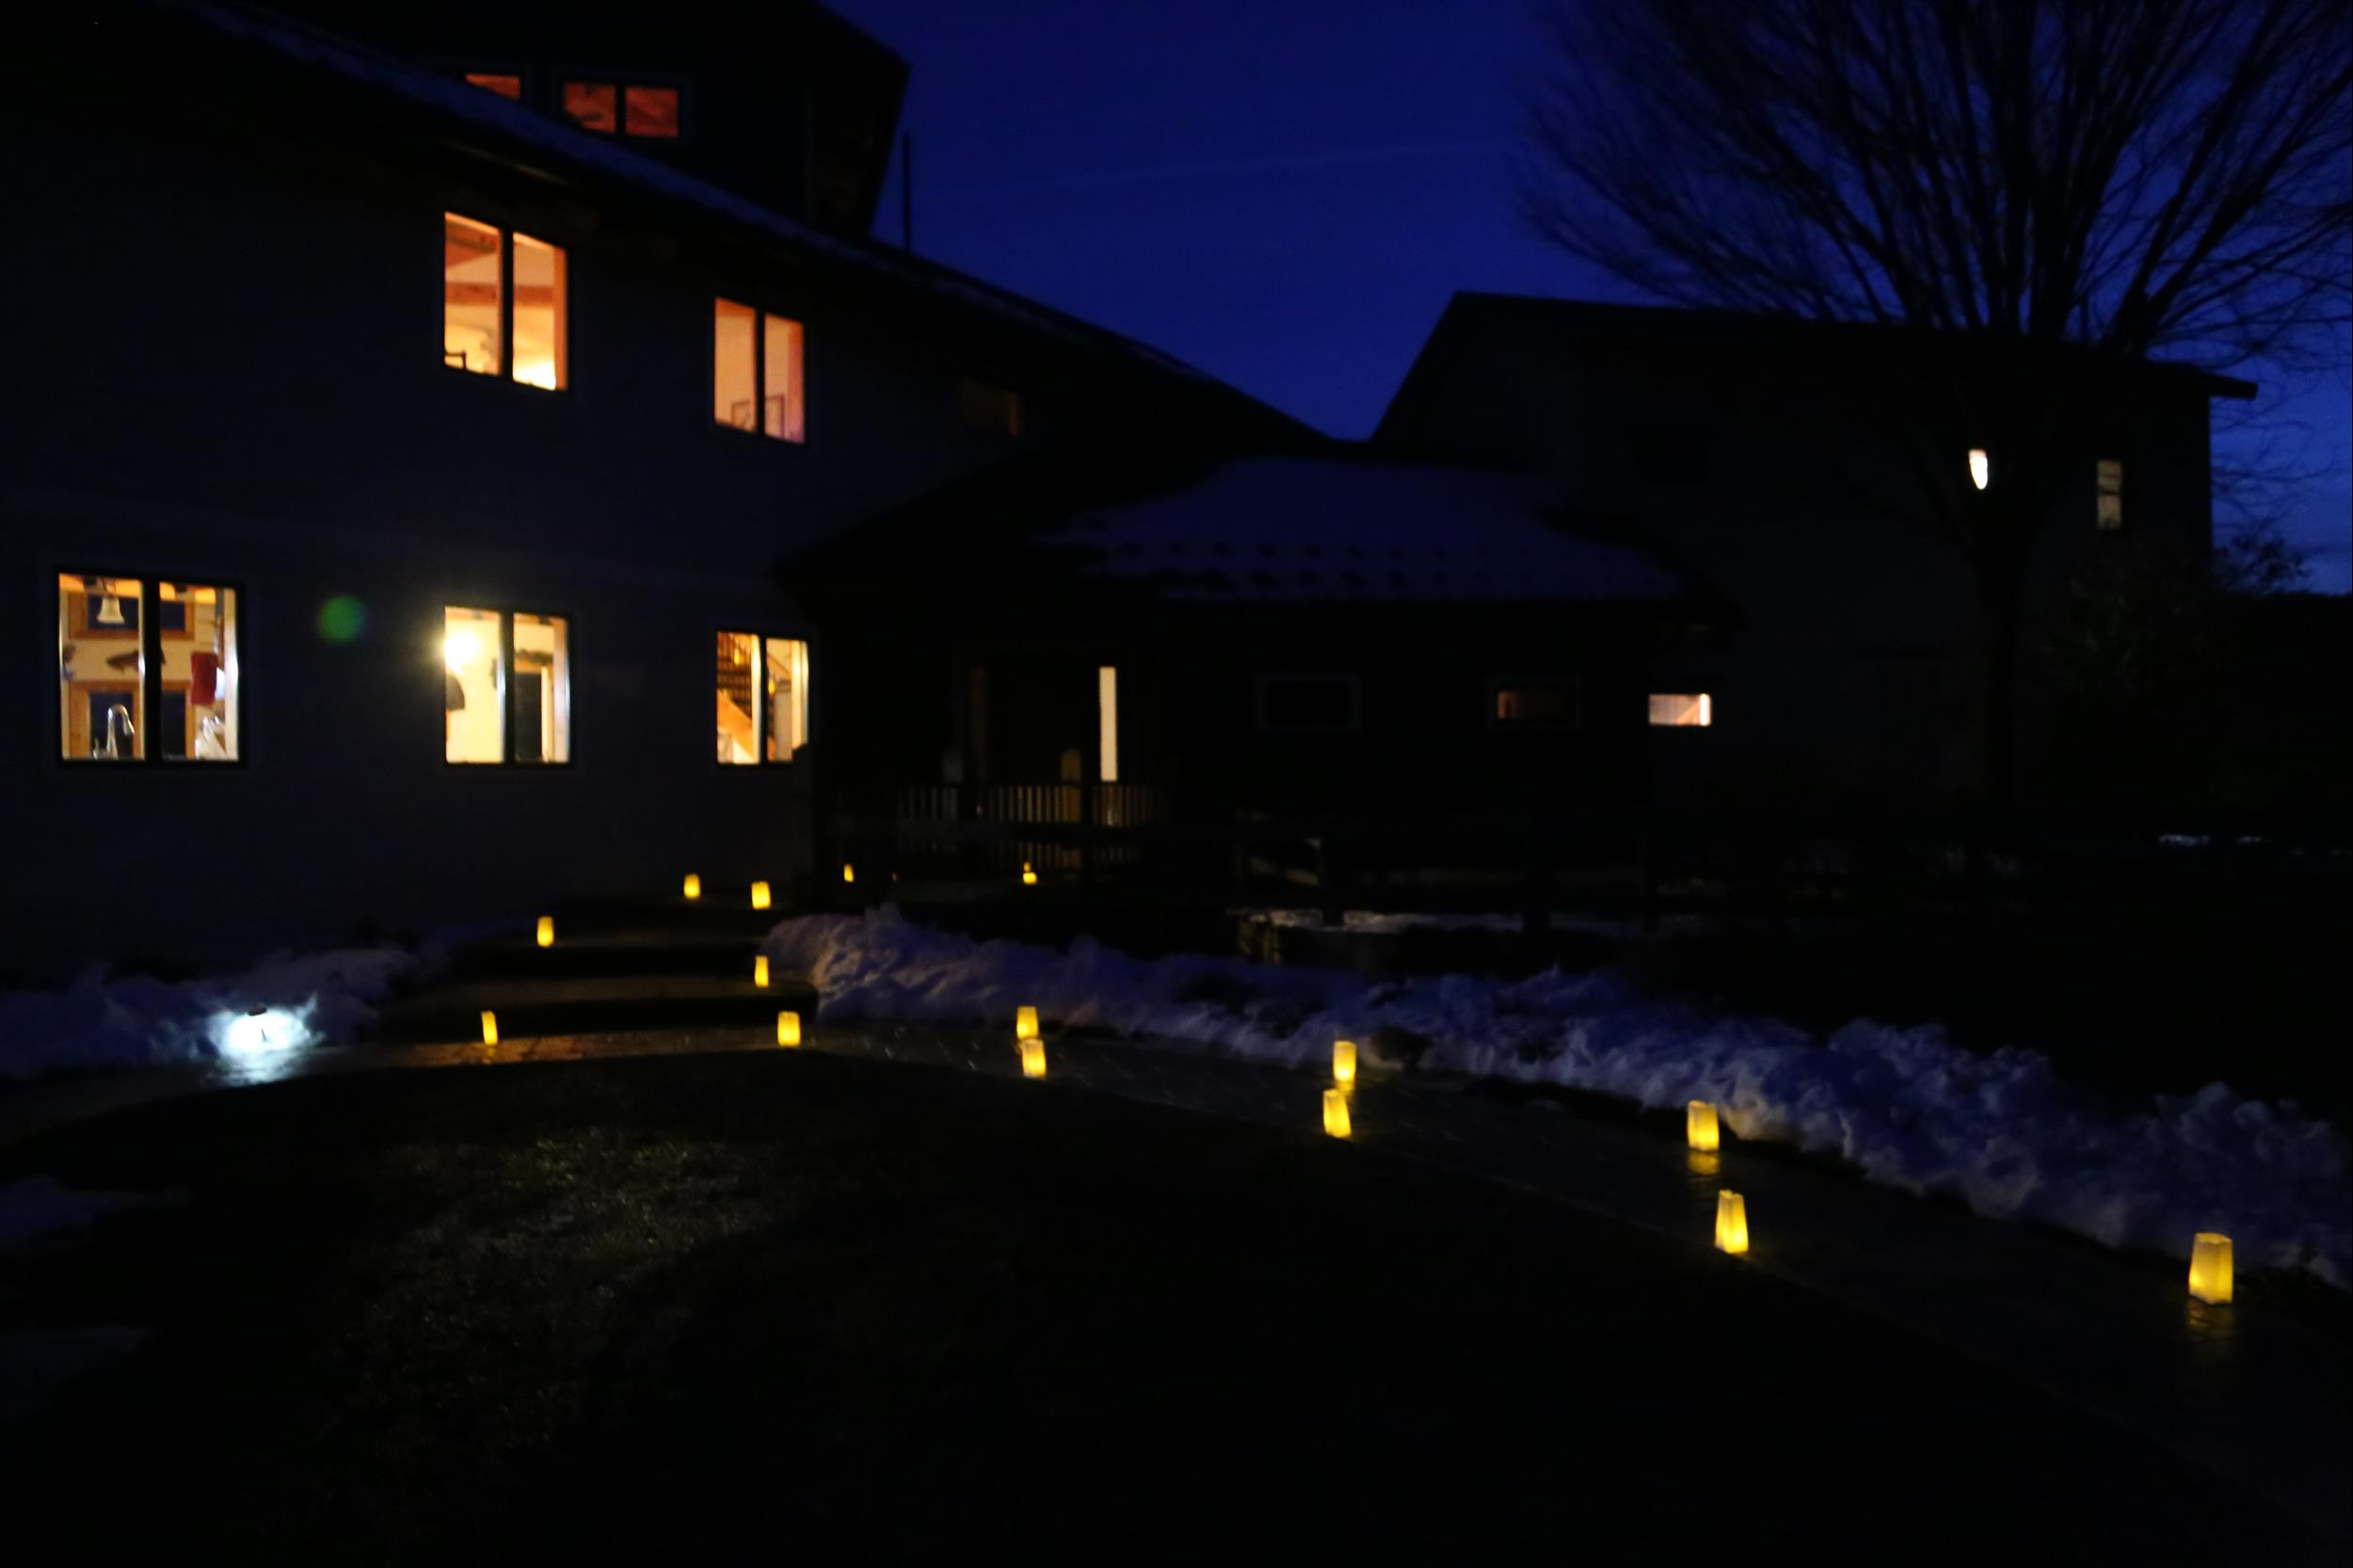 luminaries approaching house at dusk